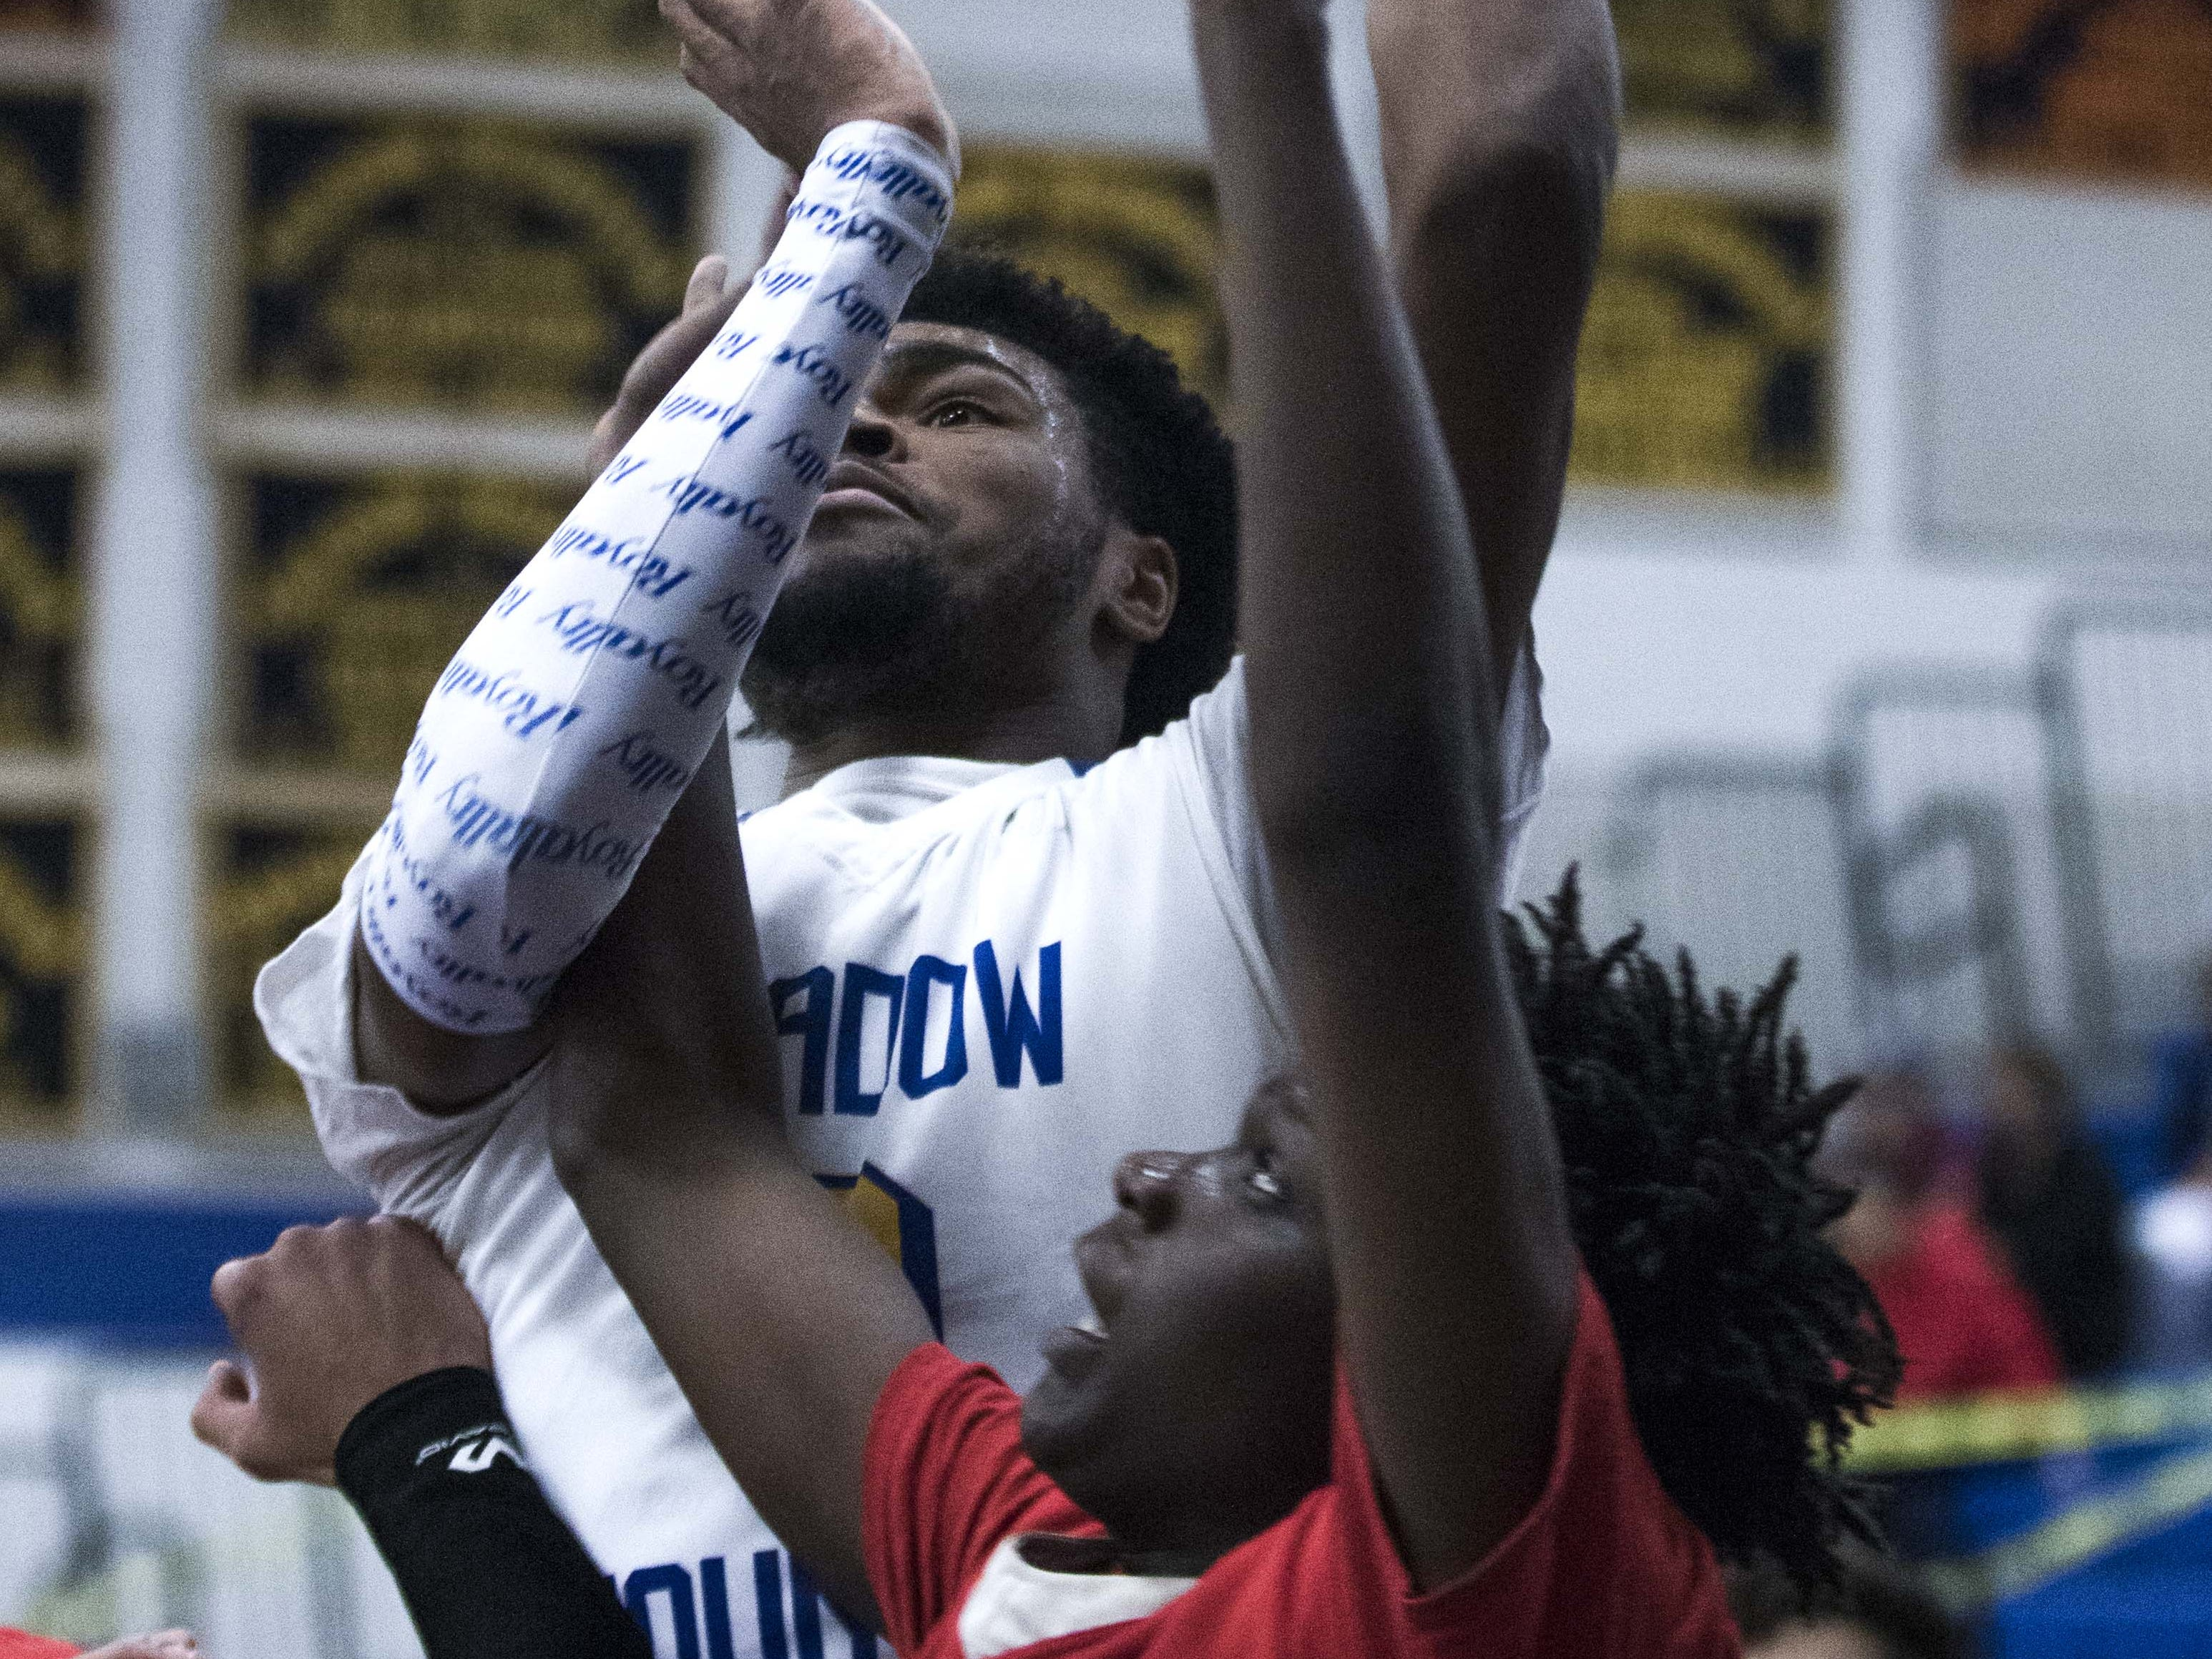 Shadow Mountain's Jalen Williams (0) goes up and over a Moon Valley player during the first half of their game in Phoenix, Tuesday, Feb .12,  2019.